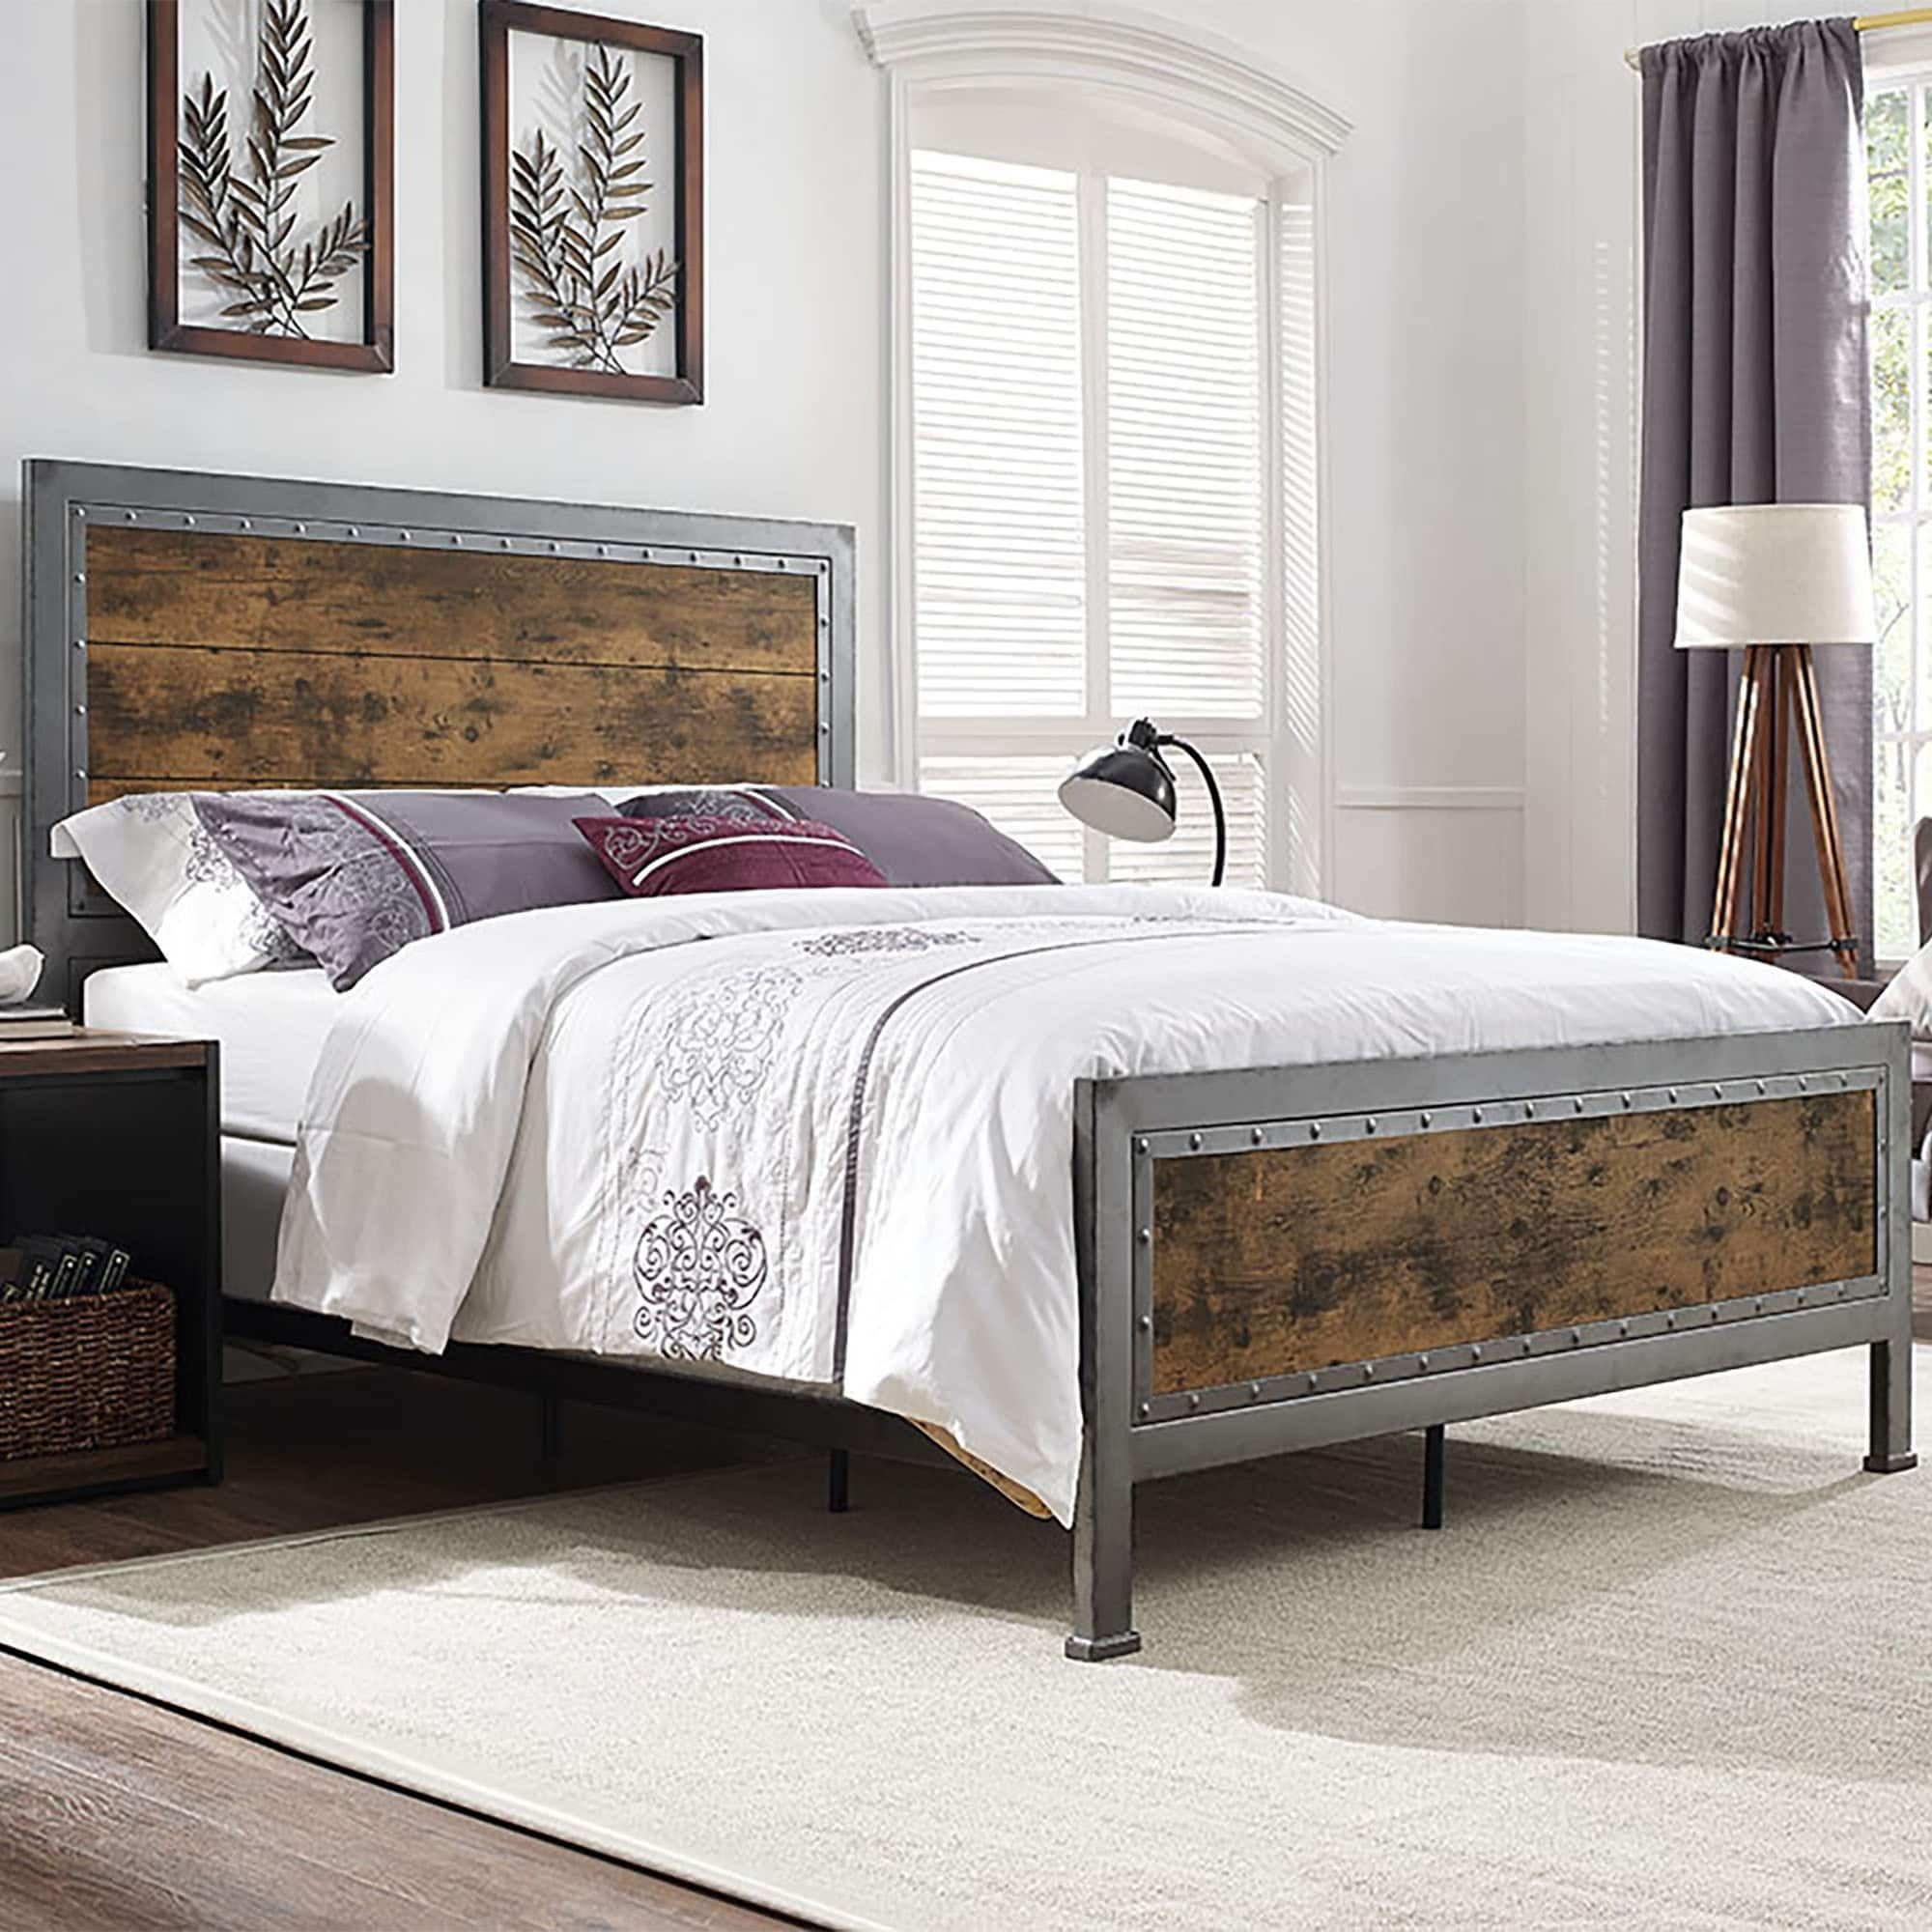 Walker Edison Queen Size Industrial Wood And Metal Bed   Brown   The  Finished Back Of The Headboard On The Walker Edison Queen Size Industrial  Wood And ...